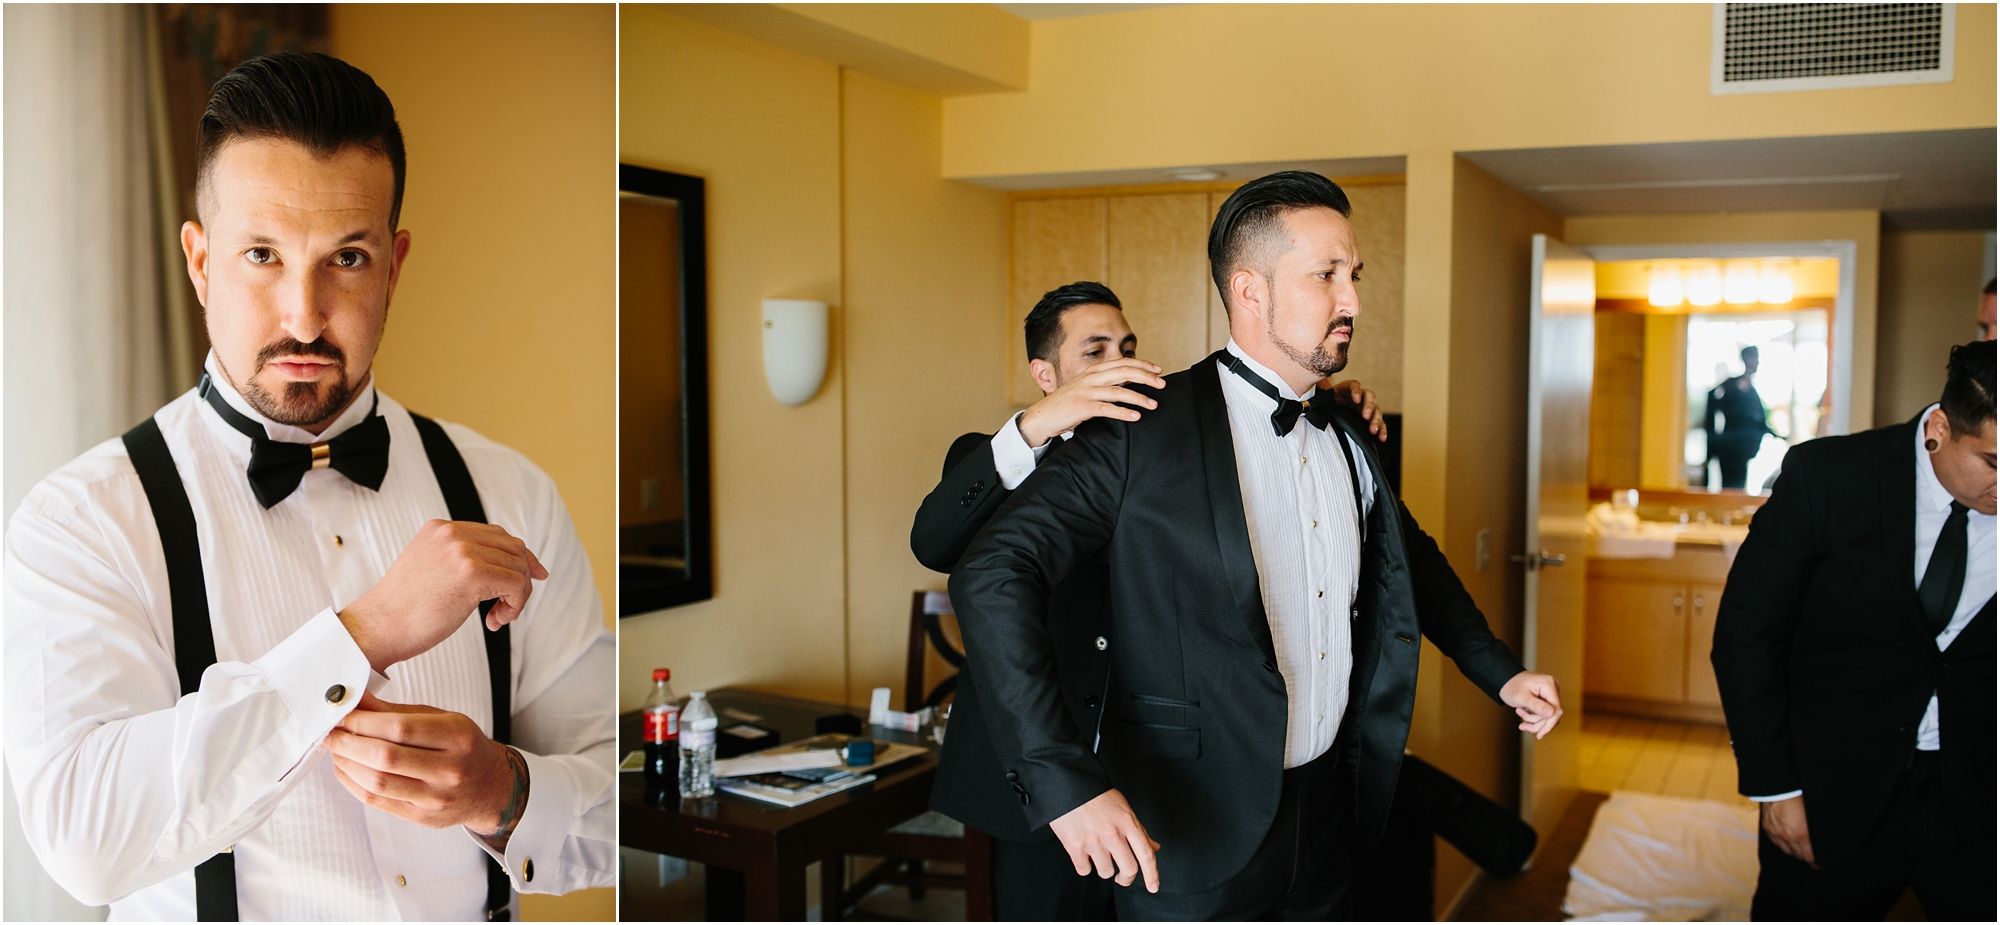 Groom Getting Ready - http://brittneyhannonphotography.com